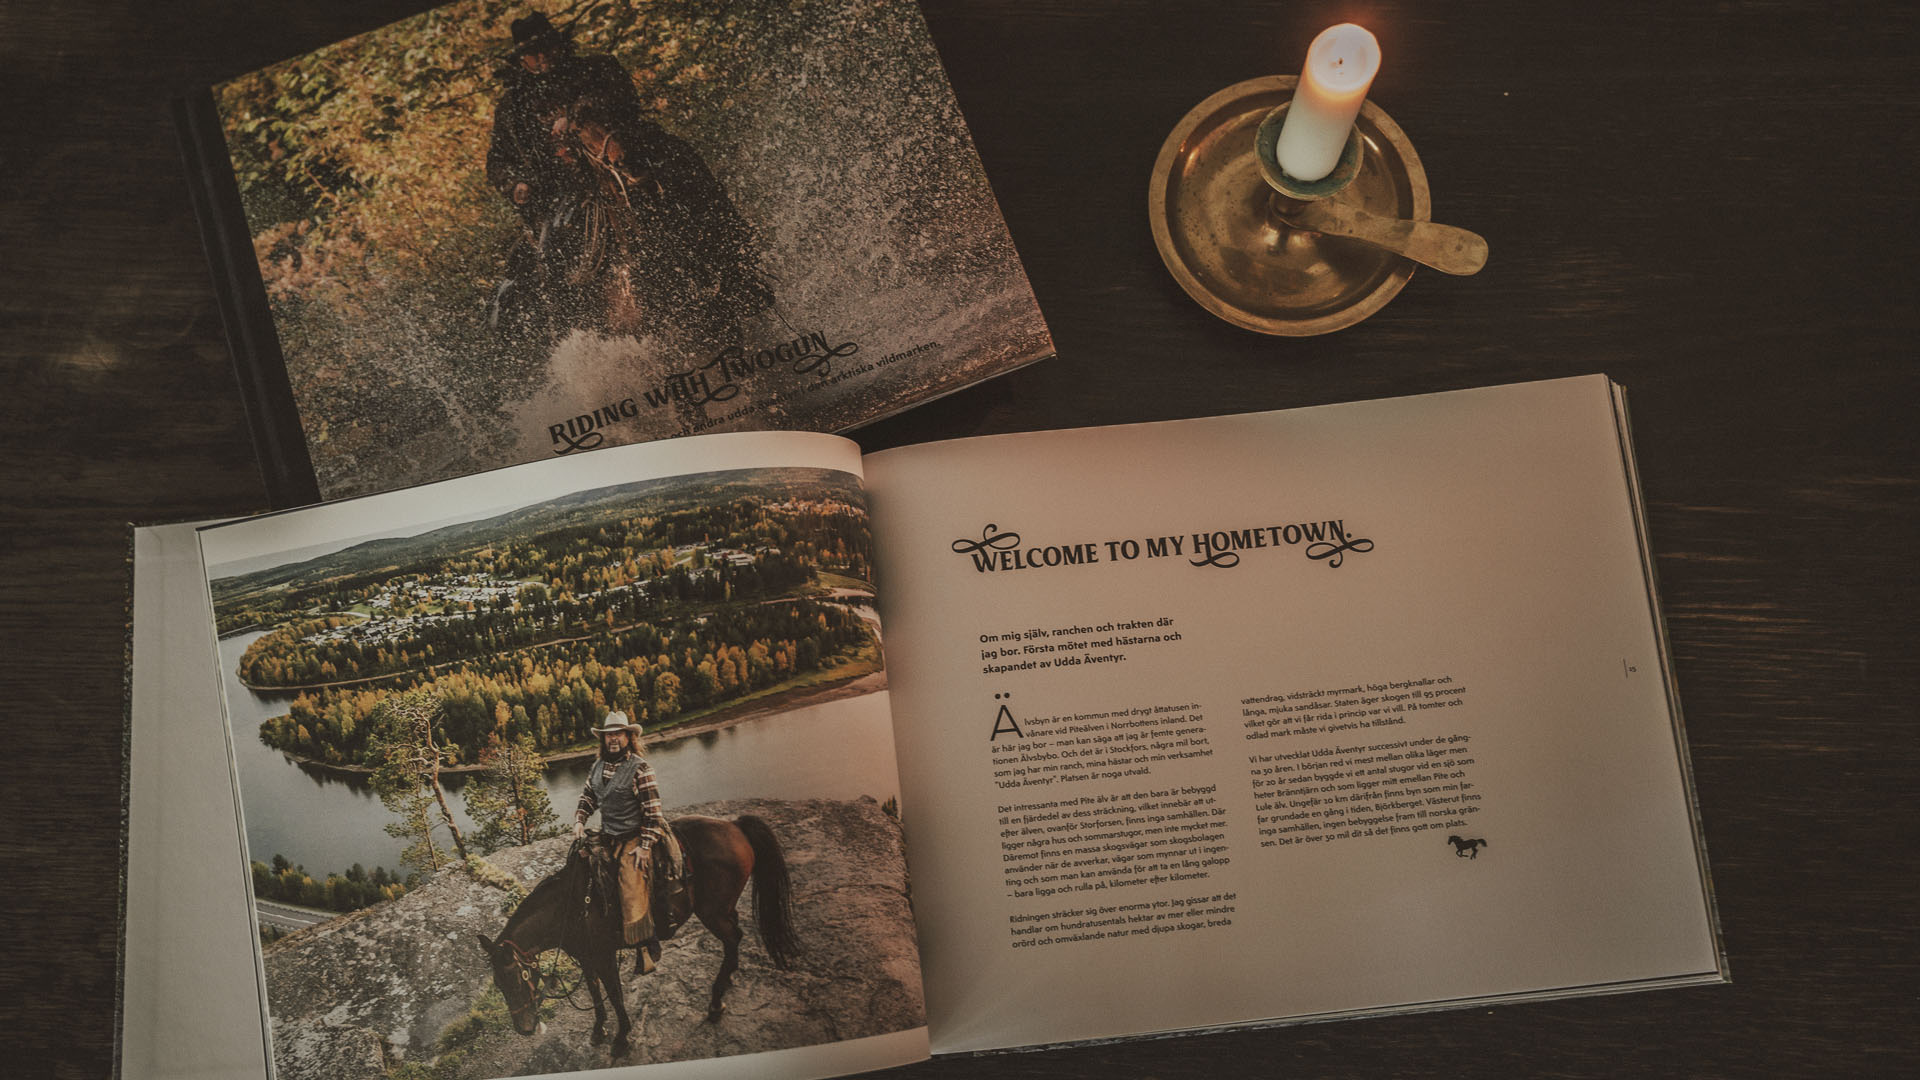 Riding with Twogun – the book –